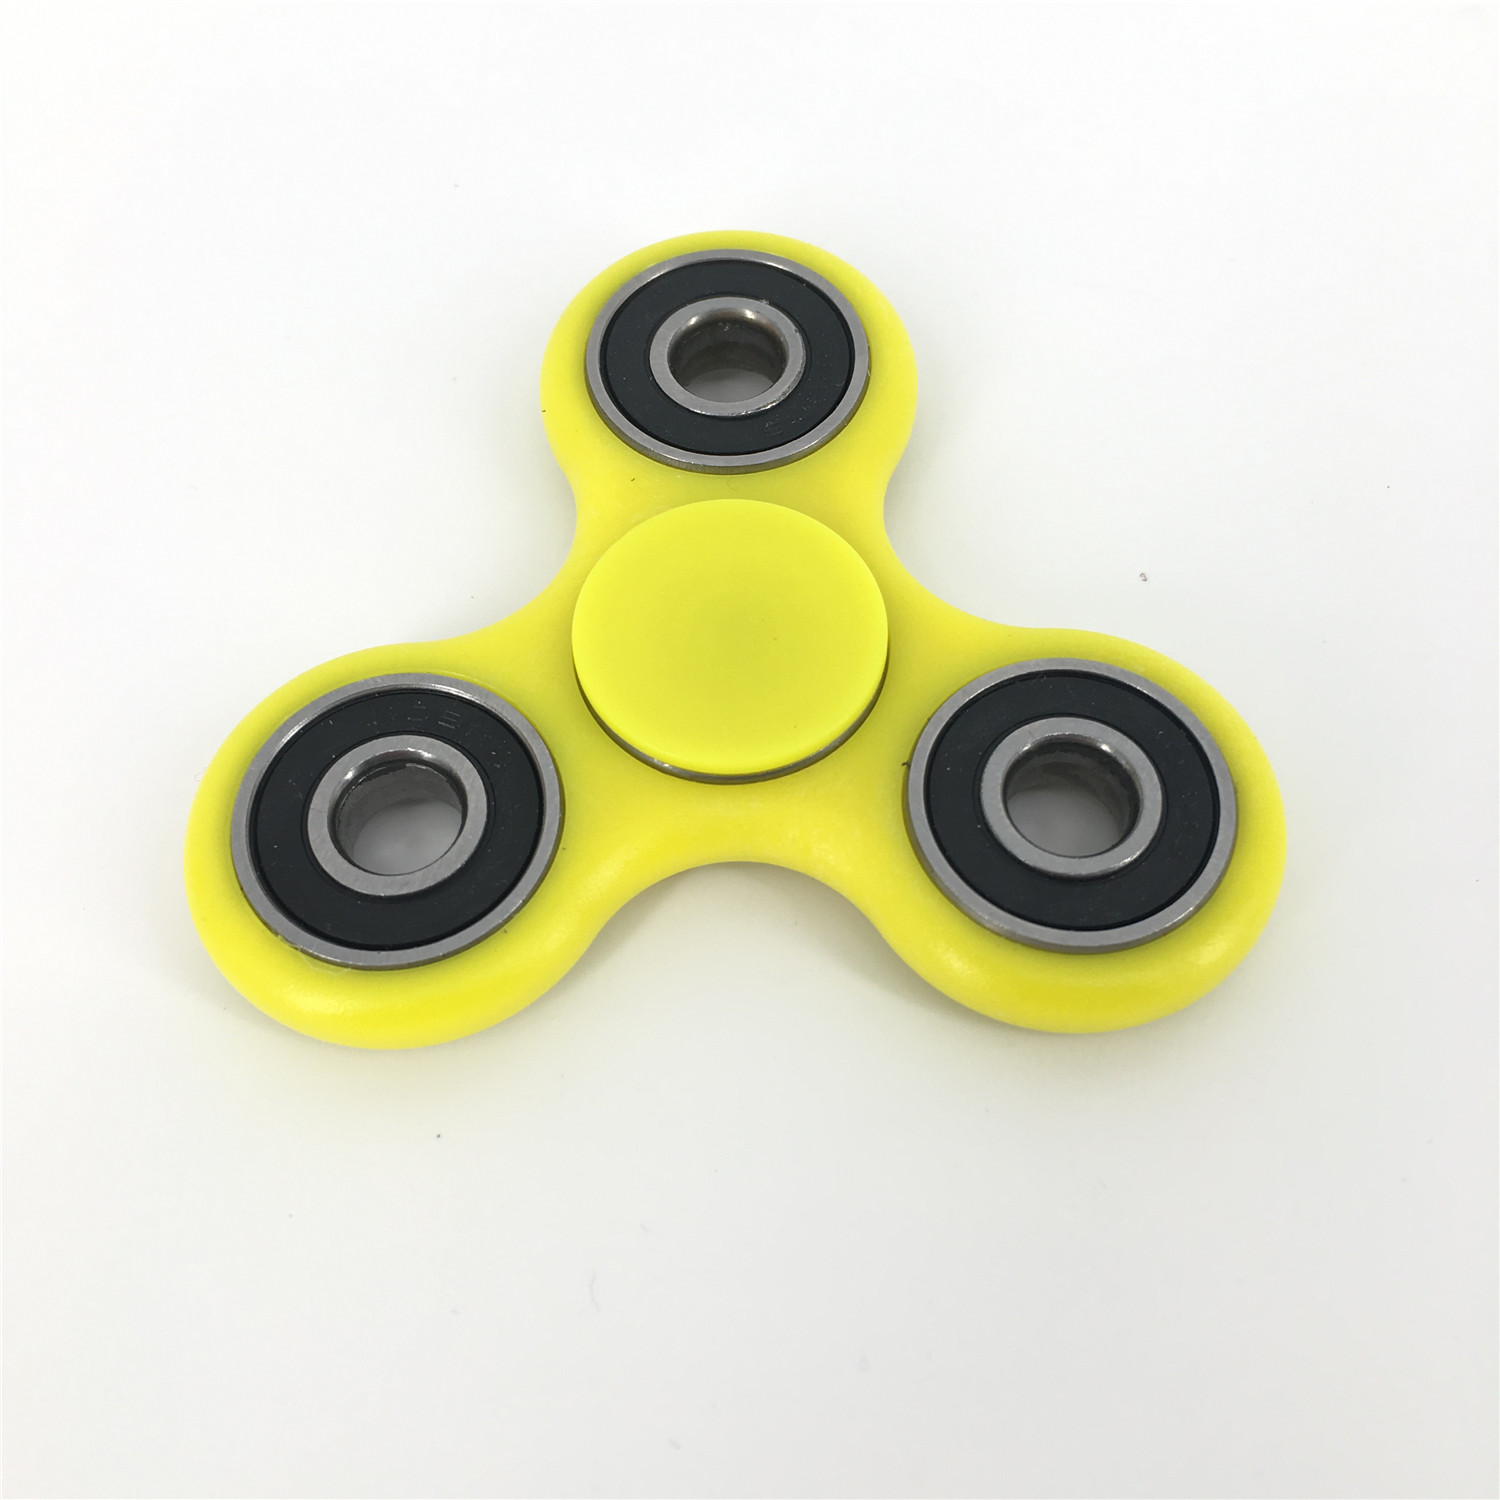 Funny toy hand Spinner Fidgets Toy Plastic EDC Sensory Fidget Spinner For Autism and ADHD Kids